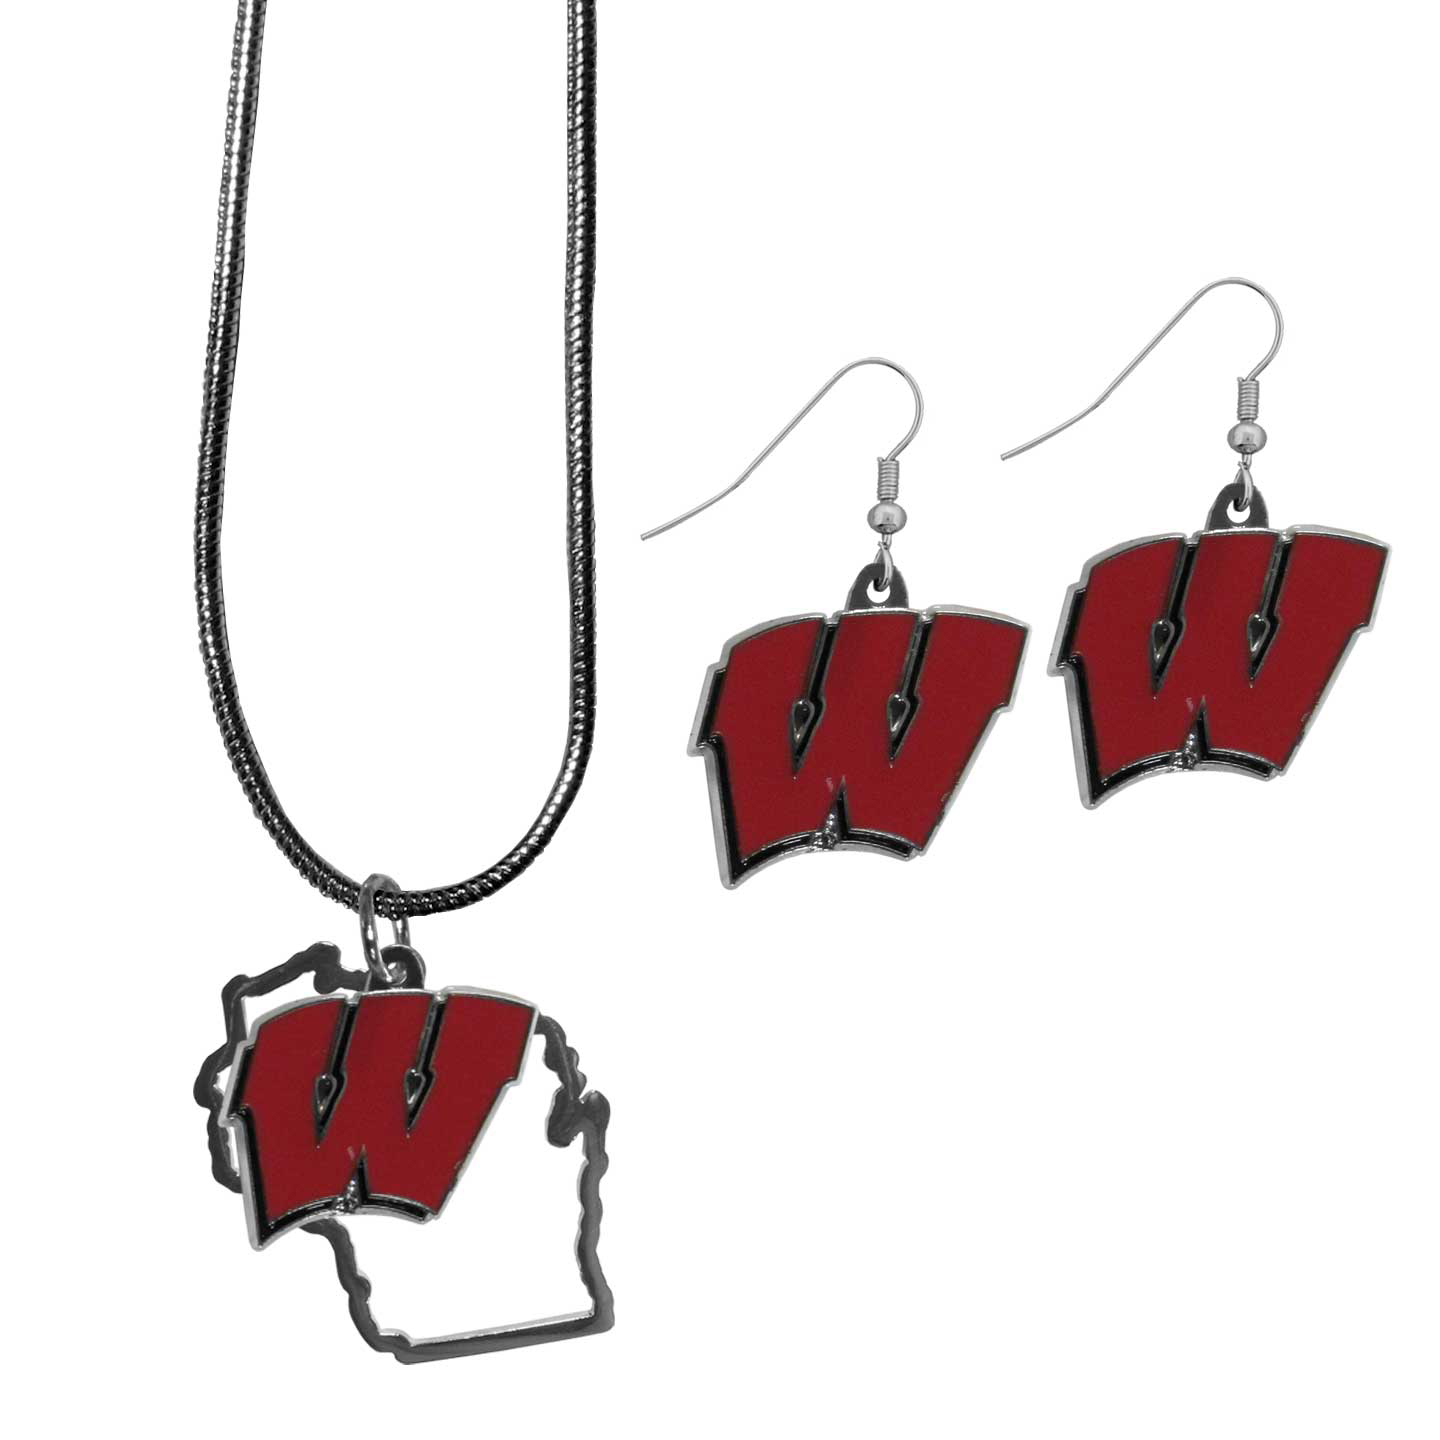 Wisconsin Badgers Dangle Earrings and State Necklace Set - Get in on the trend! State themes are a trend that just keeps getting more popular and this jewelry set takes the state style and give it a sporty twist with a Wisconsin Badgers necklace that features an Arizona state outline charm paired with a beautiful team charm and matching team charm dangle earrings. The earrings feature hypoallergenic fishhook posts that are nickel free.